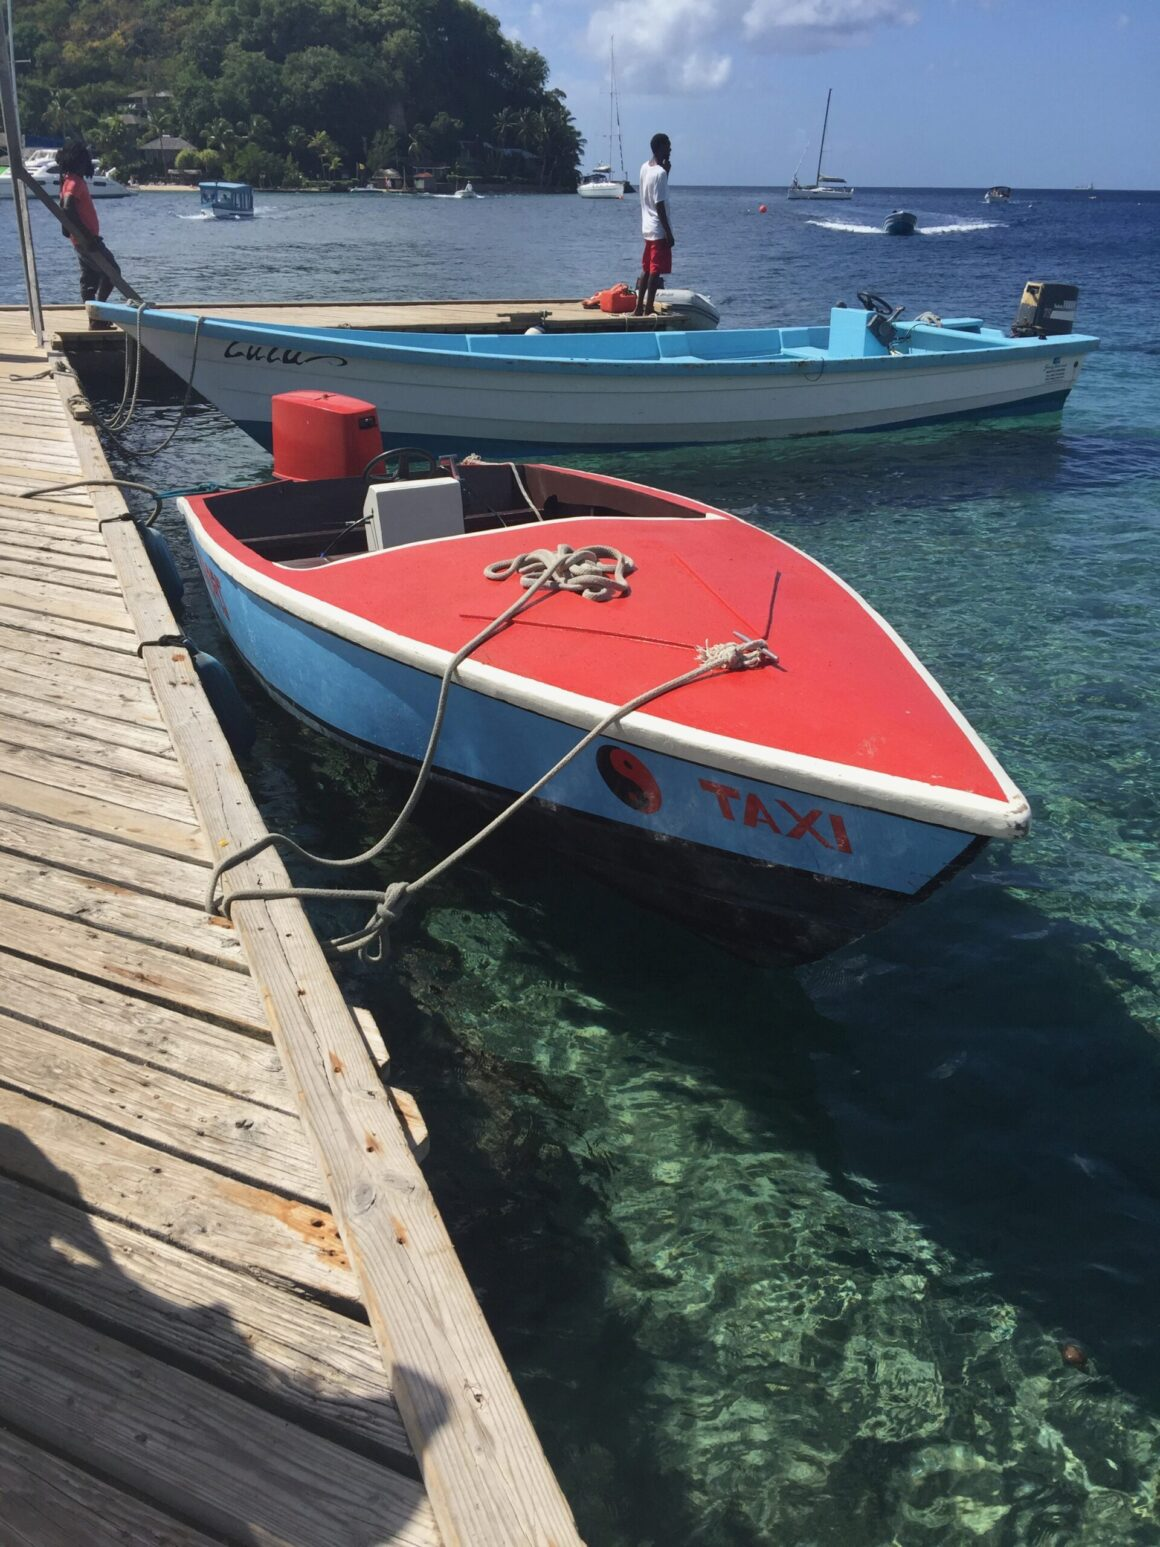 Boats Docked in St Vincent